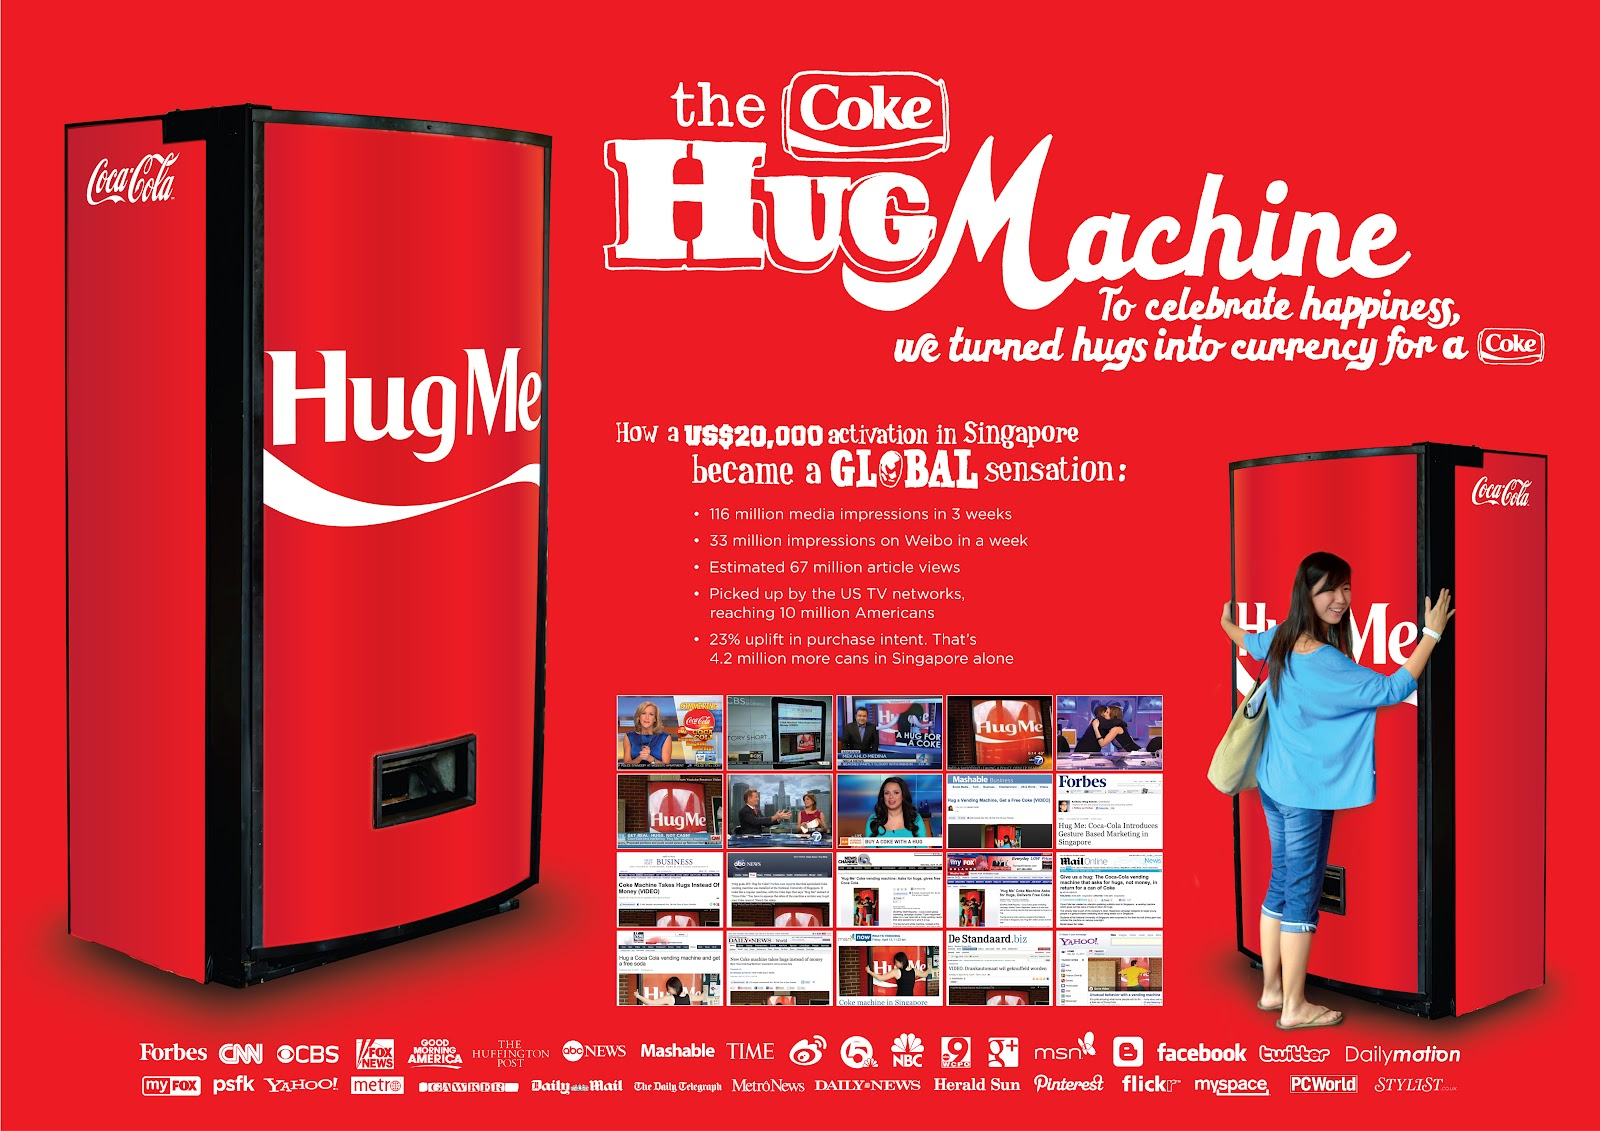 5. There's a 'Hug Me' Coca-Cola machine in Singapore